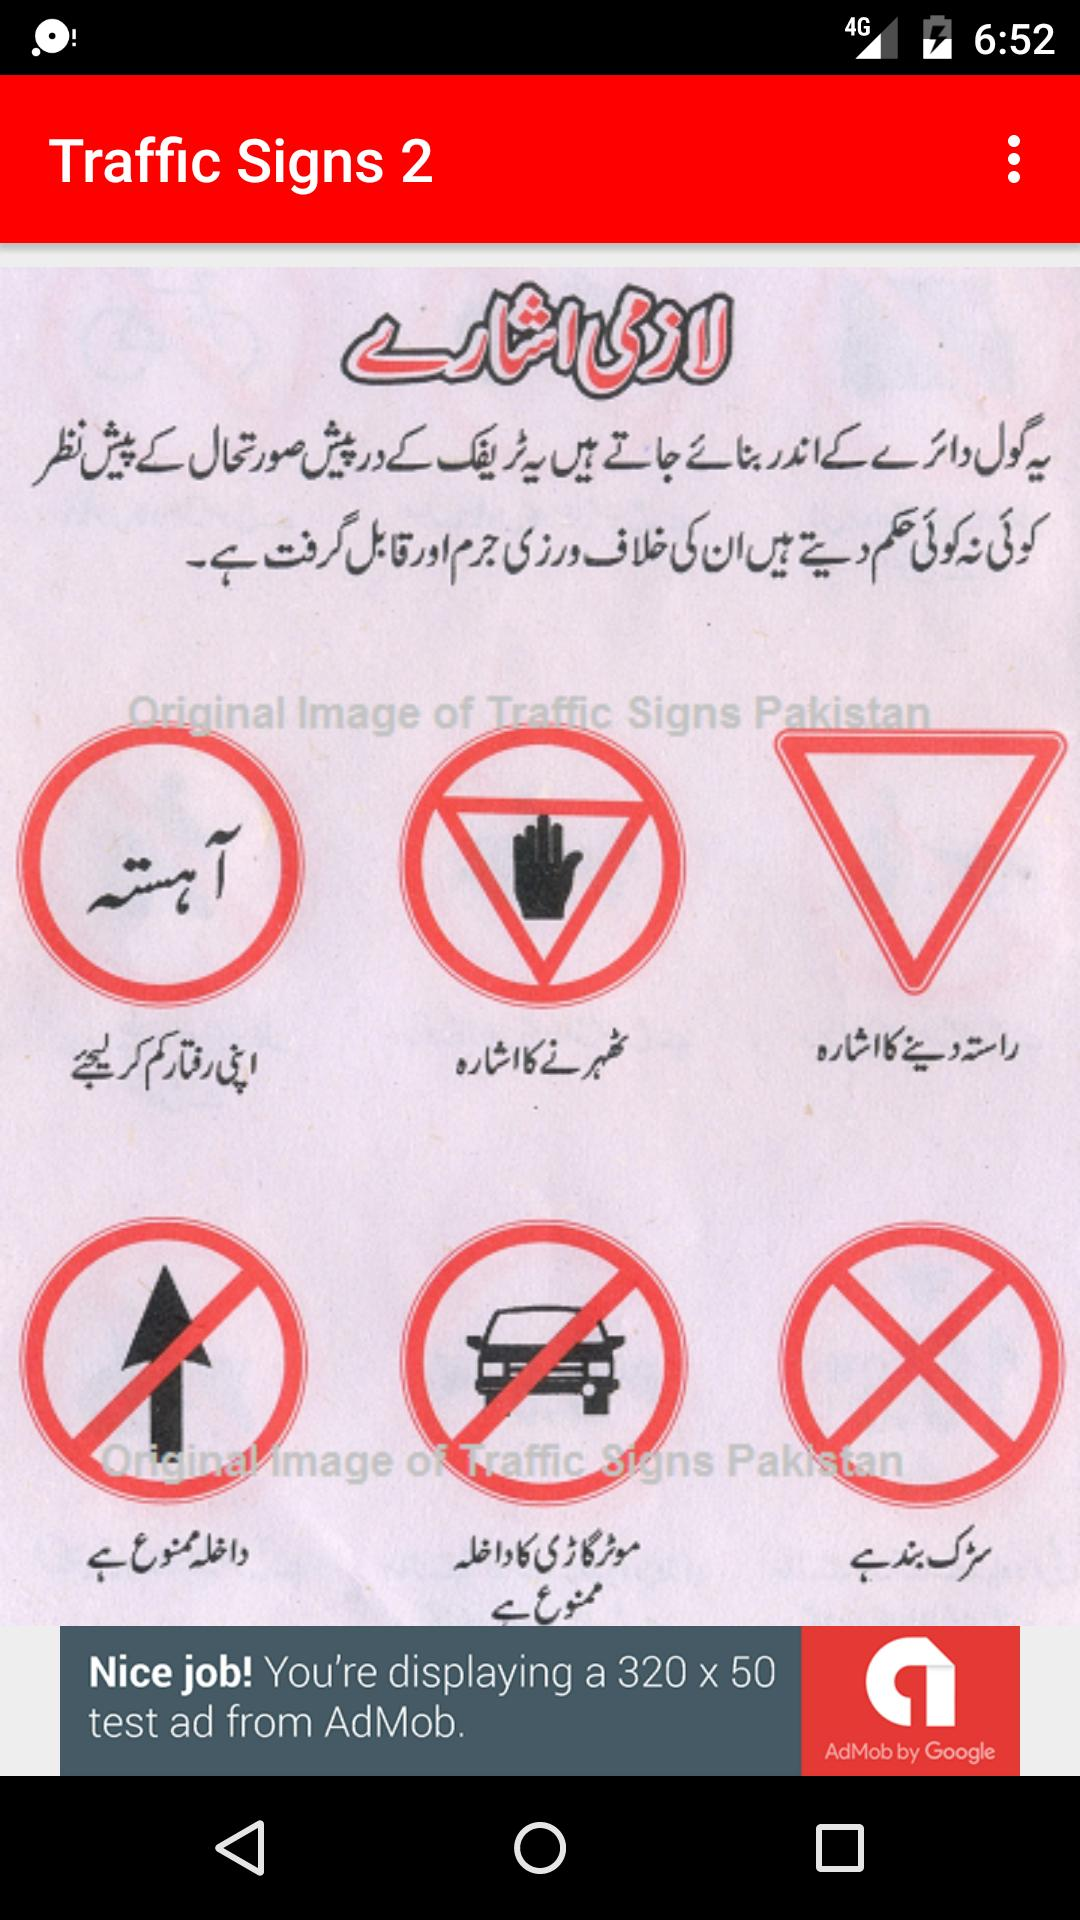 Traffic Signs Pakistan for Android - APK Download